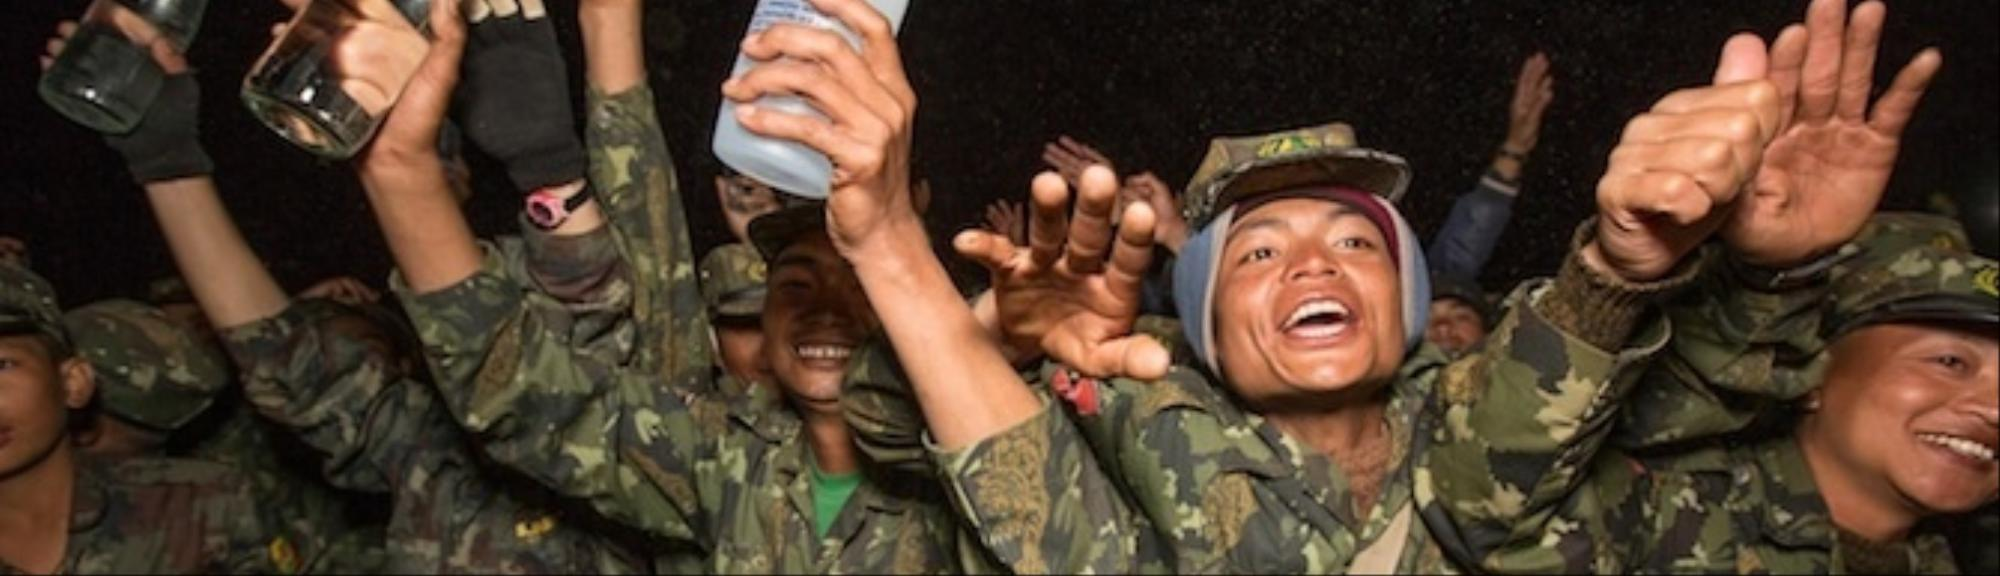 Partying With One of Myanmar's Largest Rebel Armies